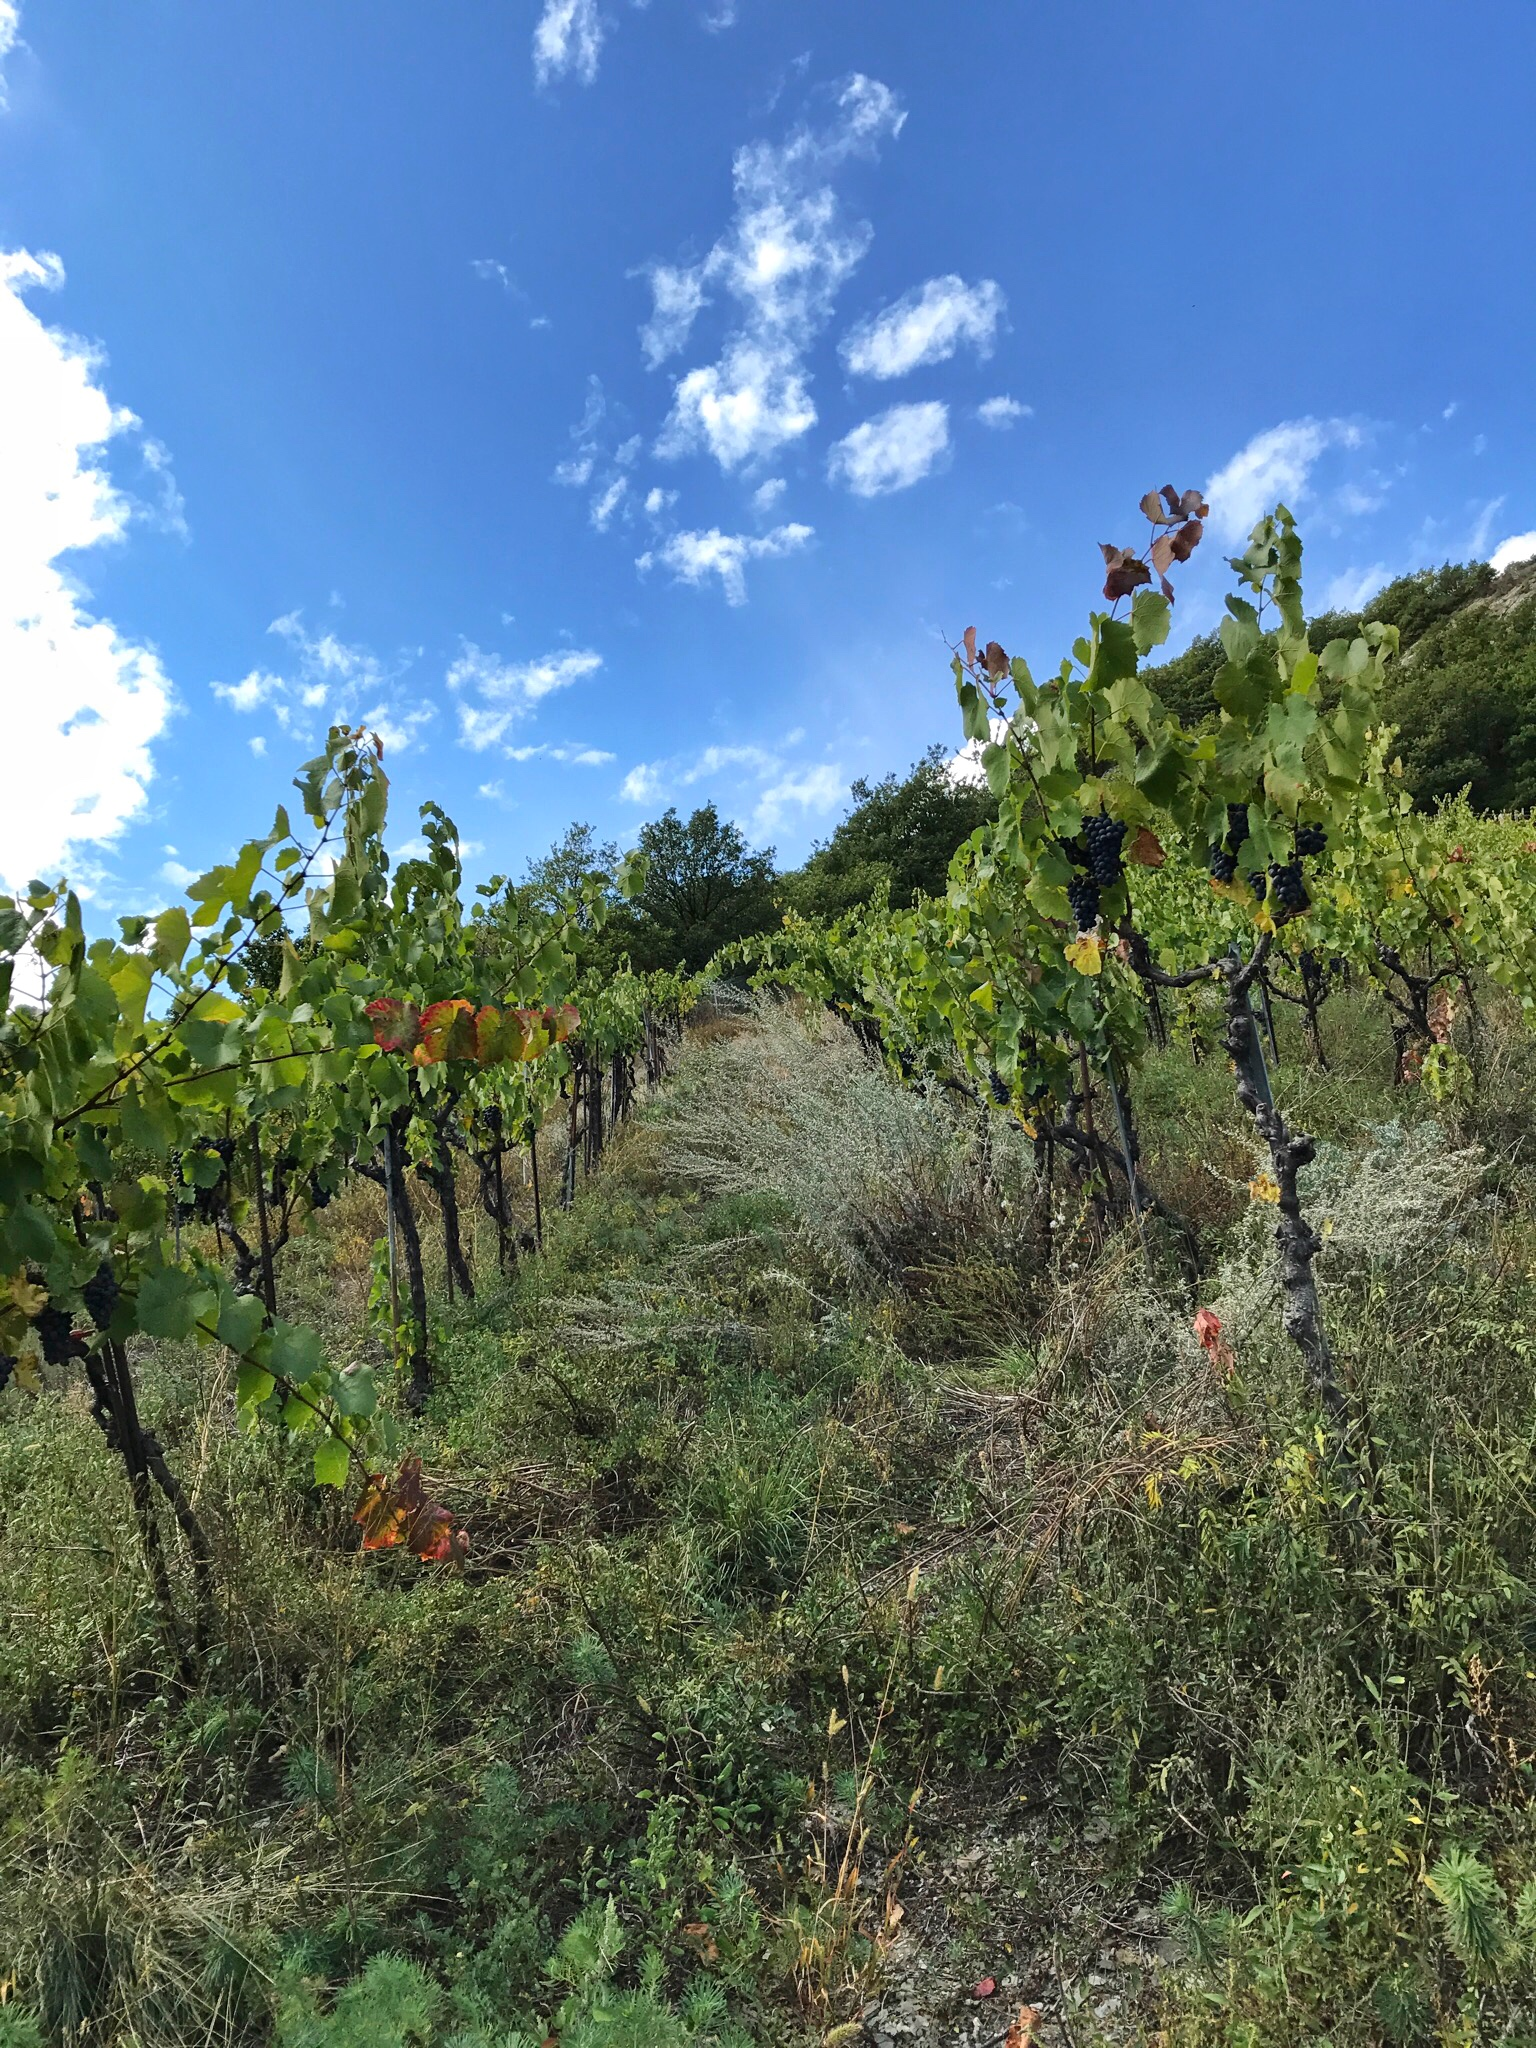 The steep slopes where the magic begins; as you can see there's more life in this vineyard than just grapes and that rich ecosystem is one of Mythopia's secrets